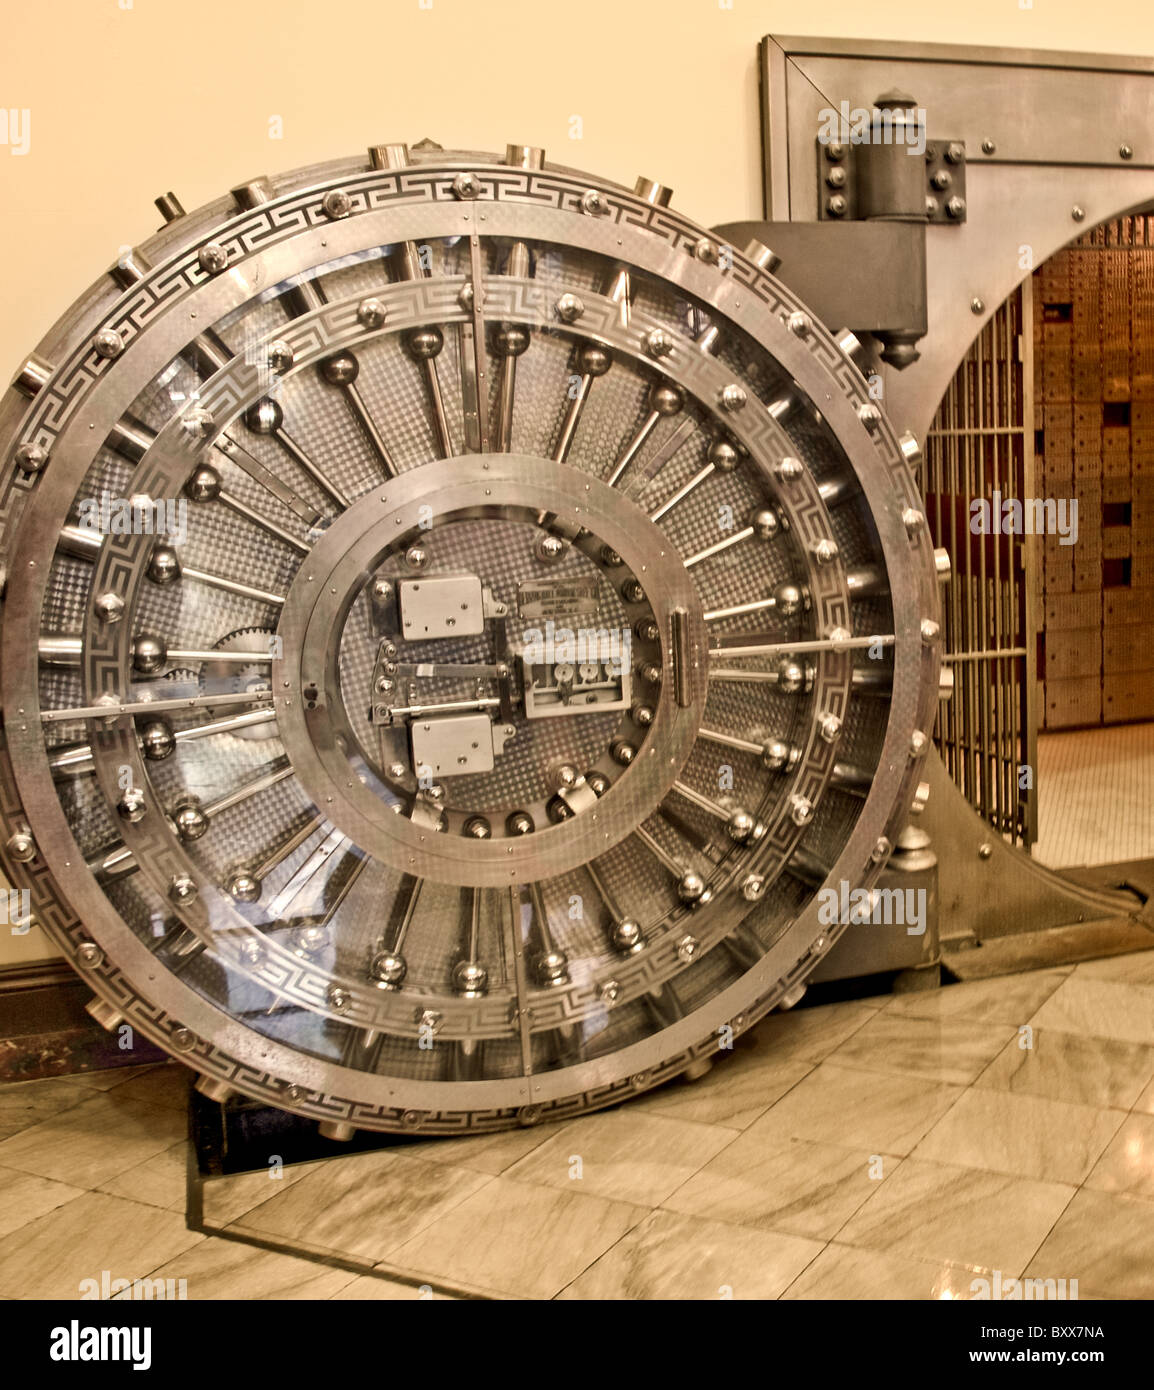 Bank vault for content protection from theft, fire and natural disasters - Stock Image